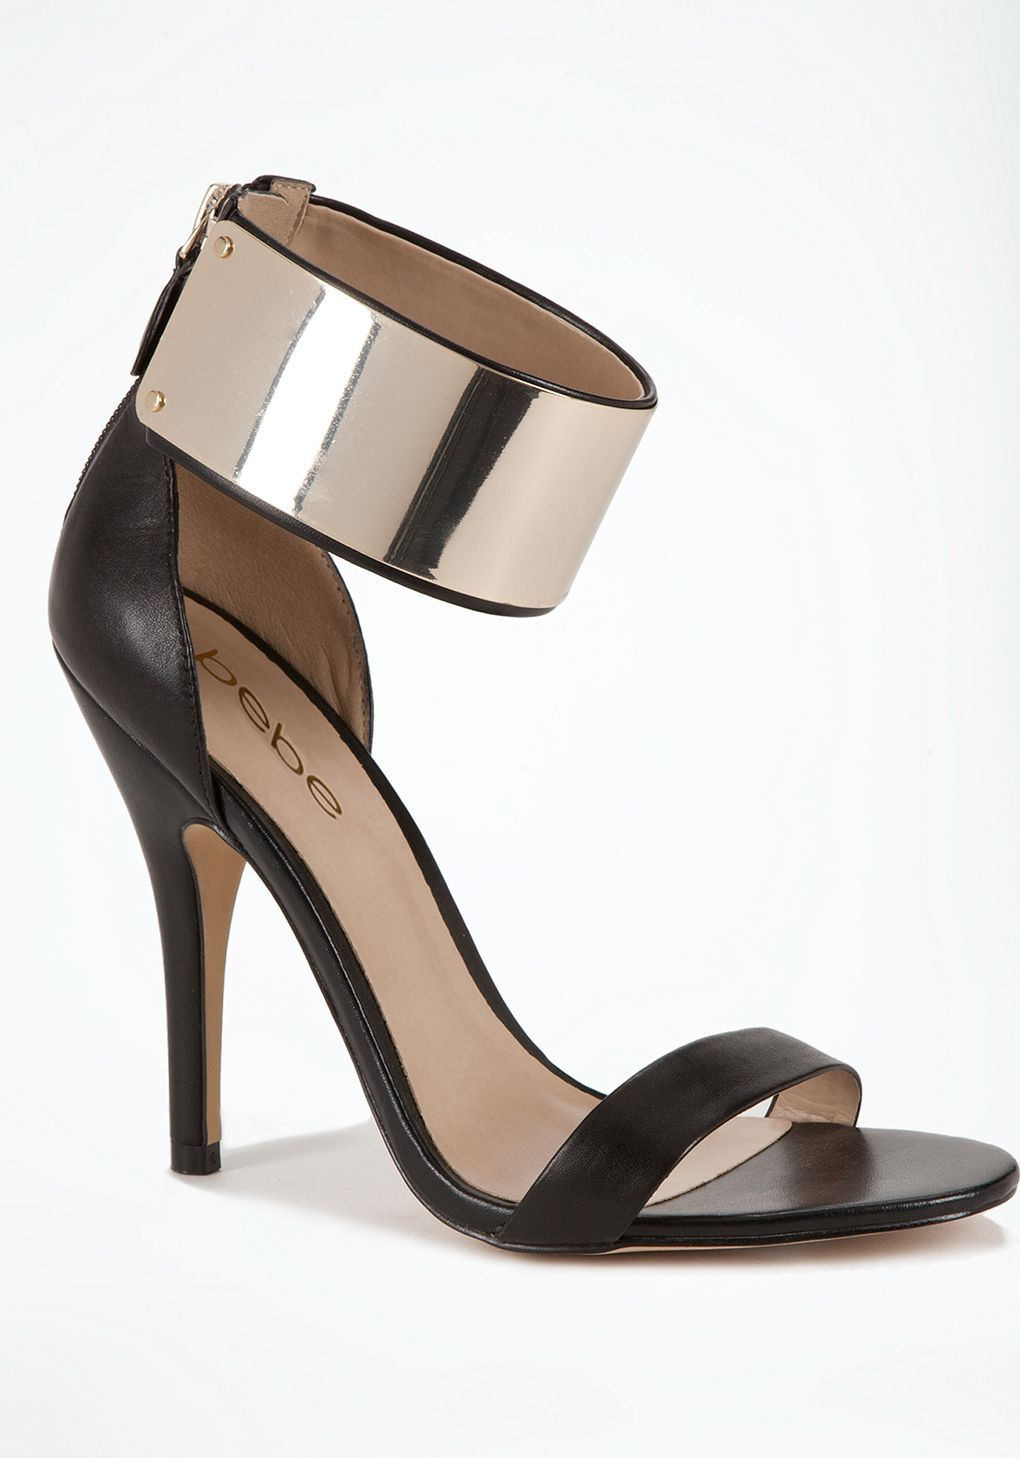 ad5343a4e43 This bebe Jacqueline Metal Cuff Sandal is going fast!